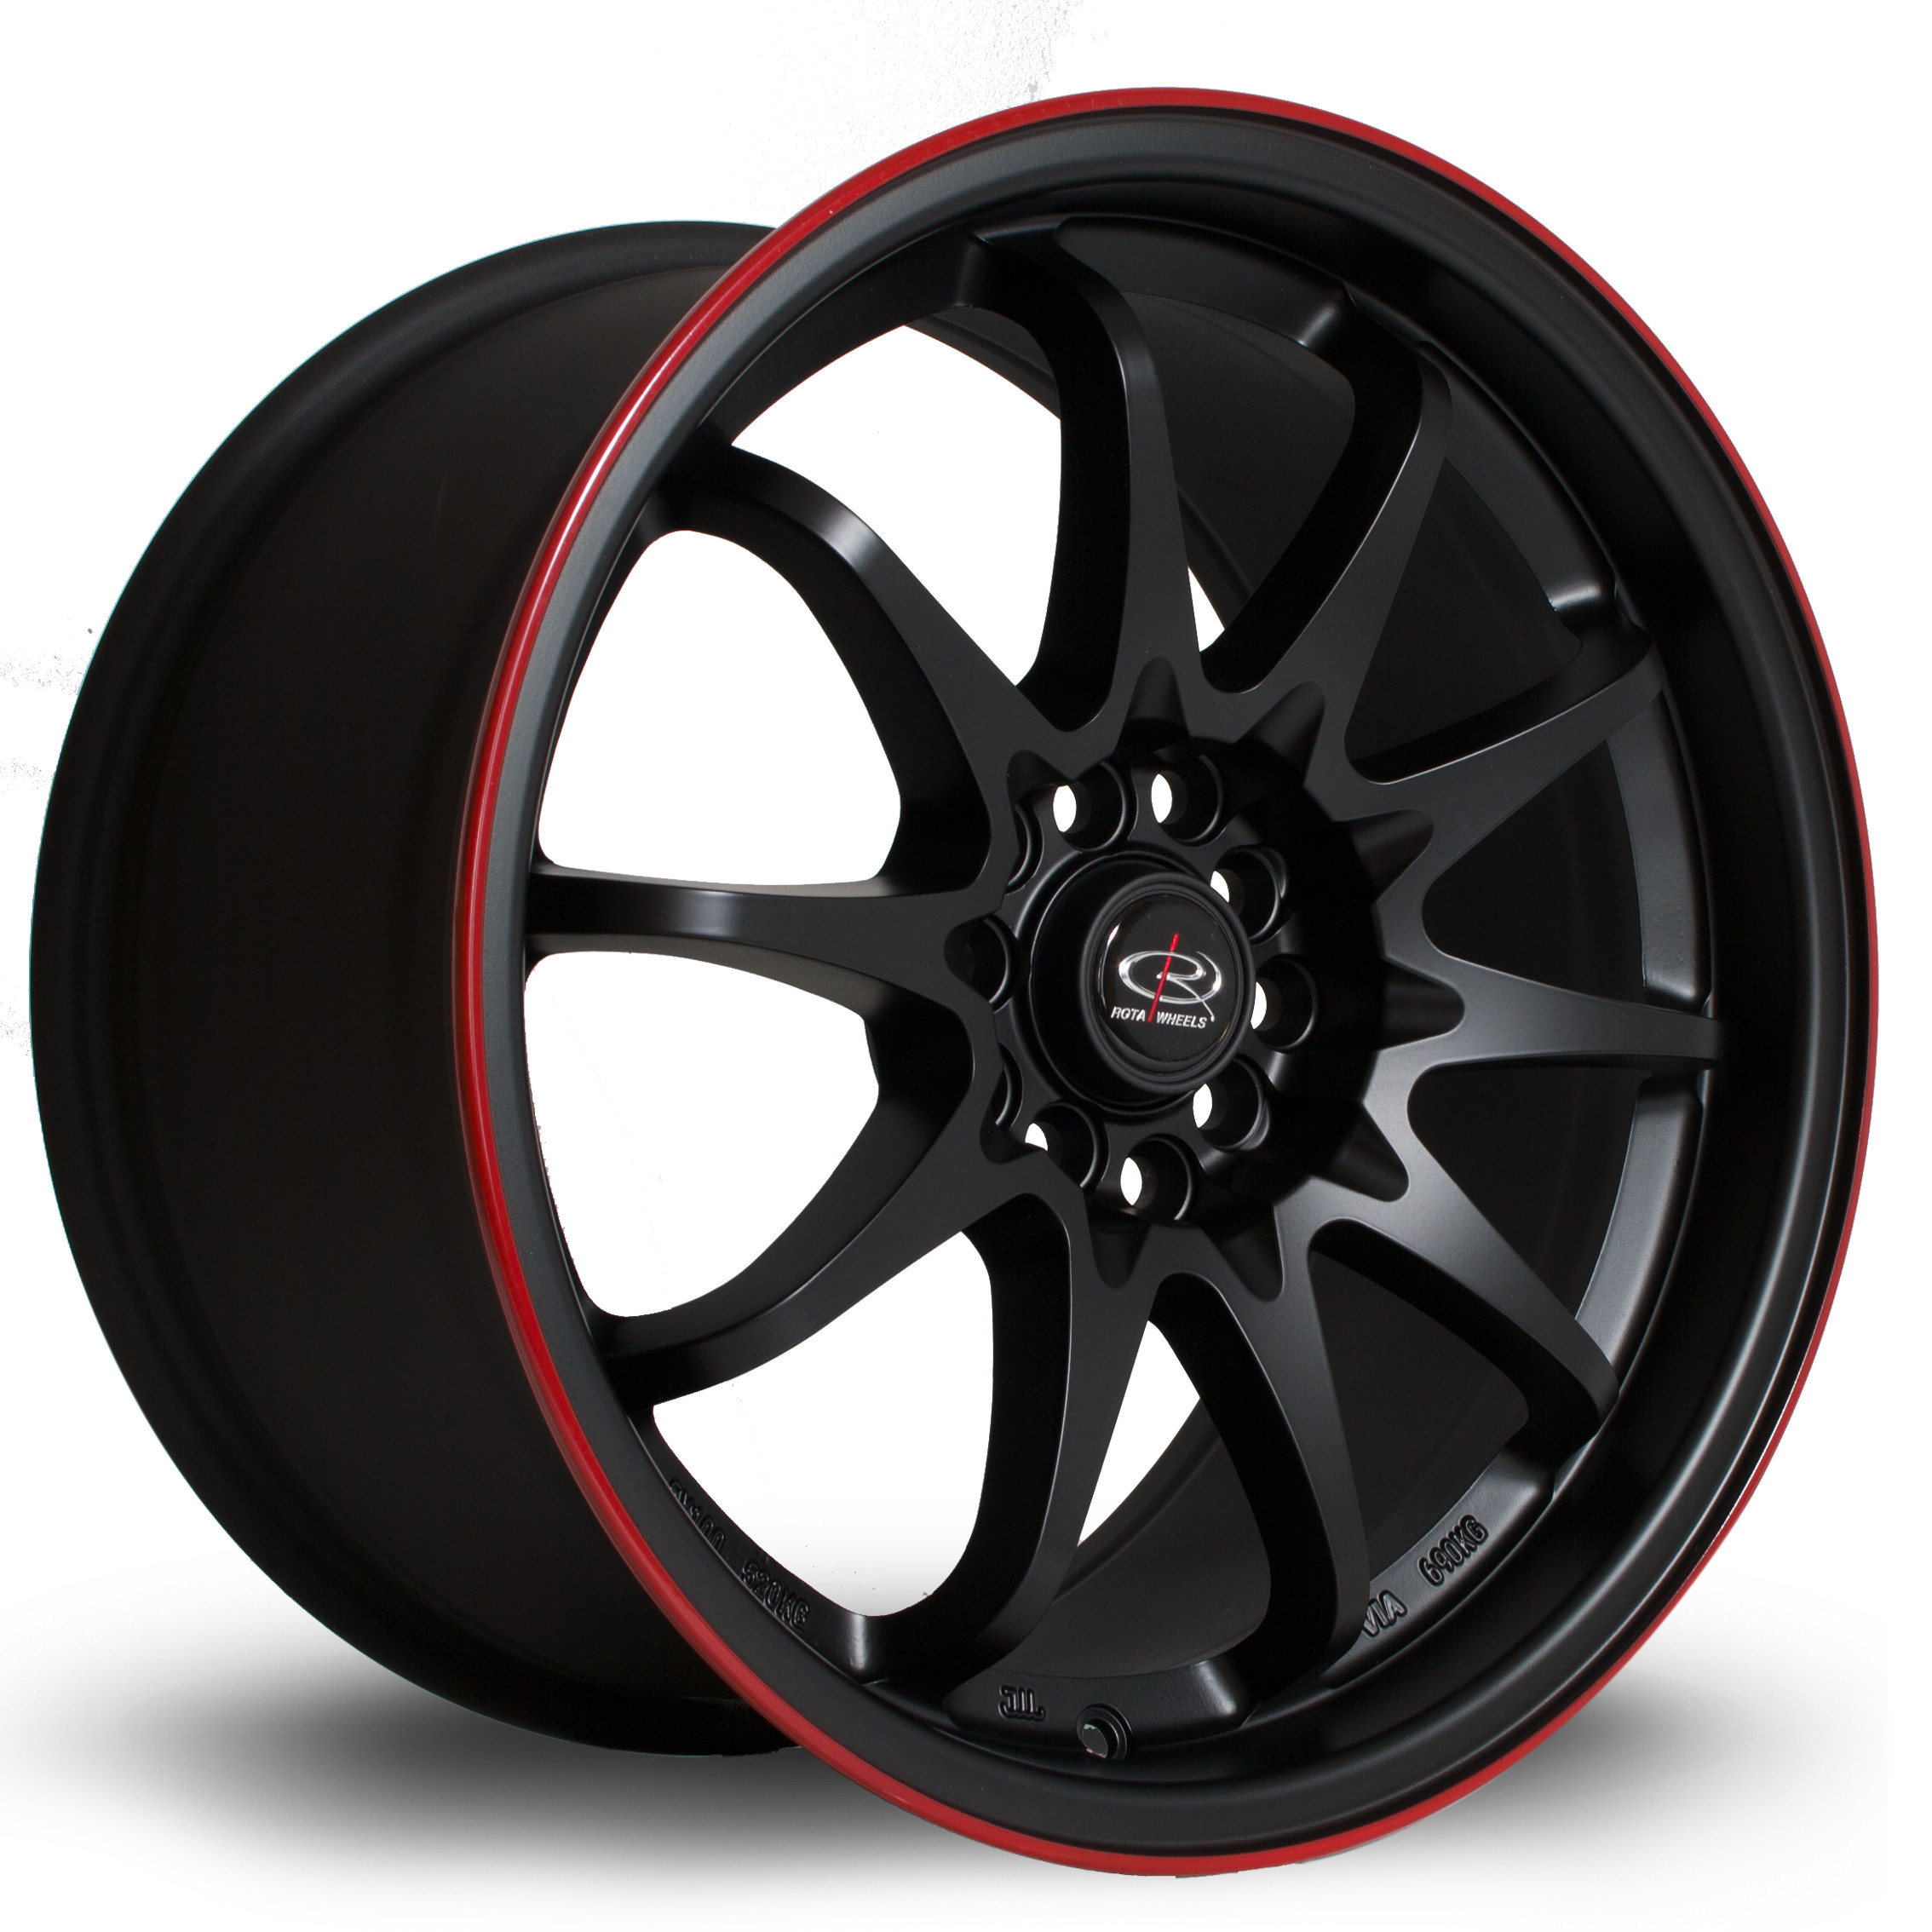 Fight 17x9 5x114 ET35 Flat Black with Red Lip